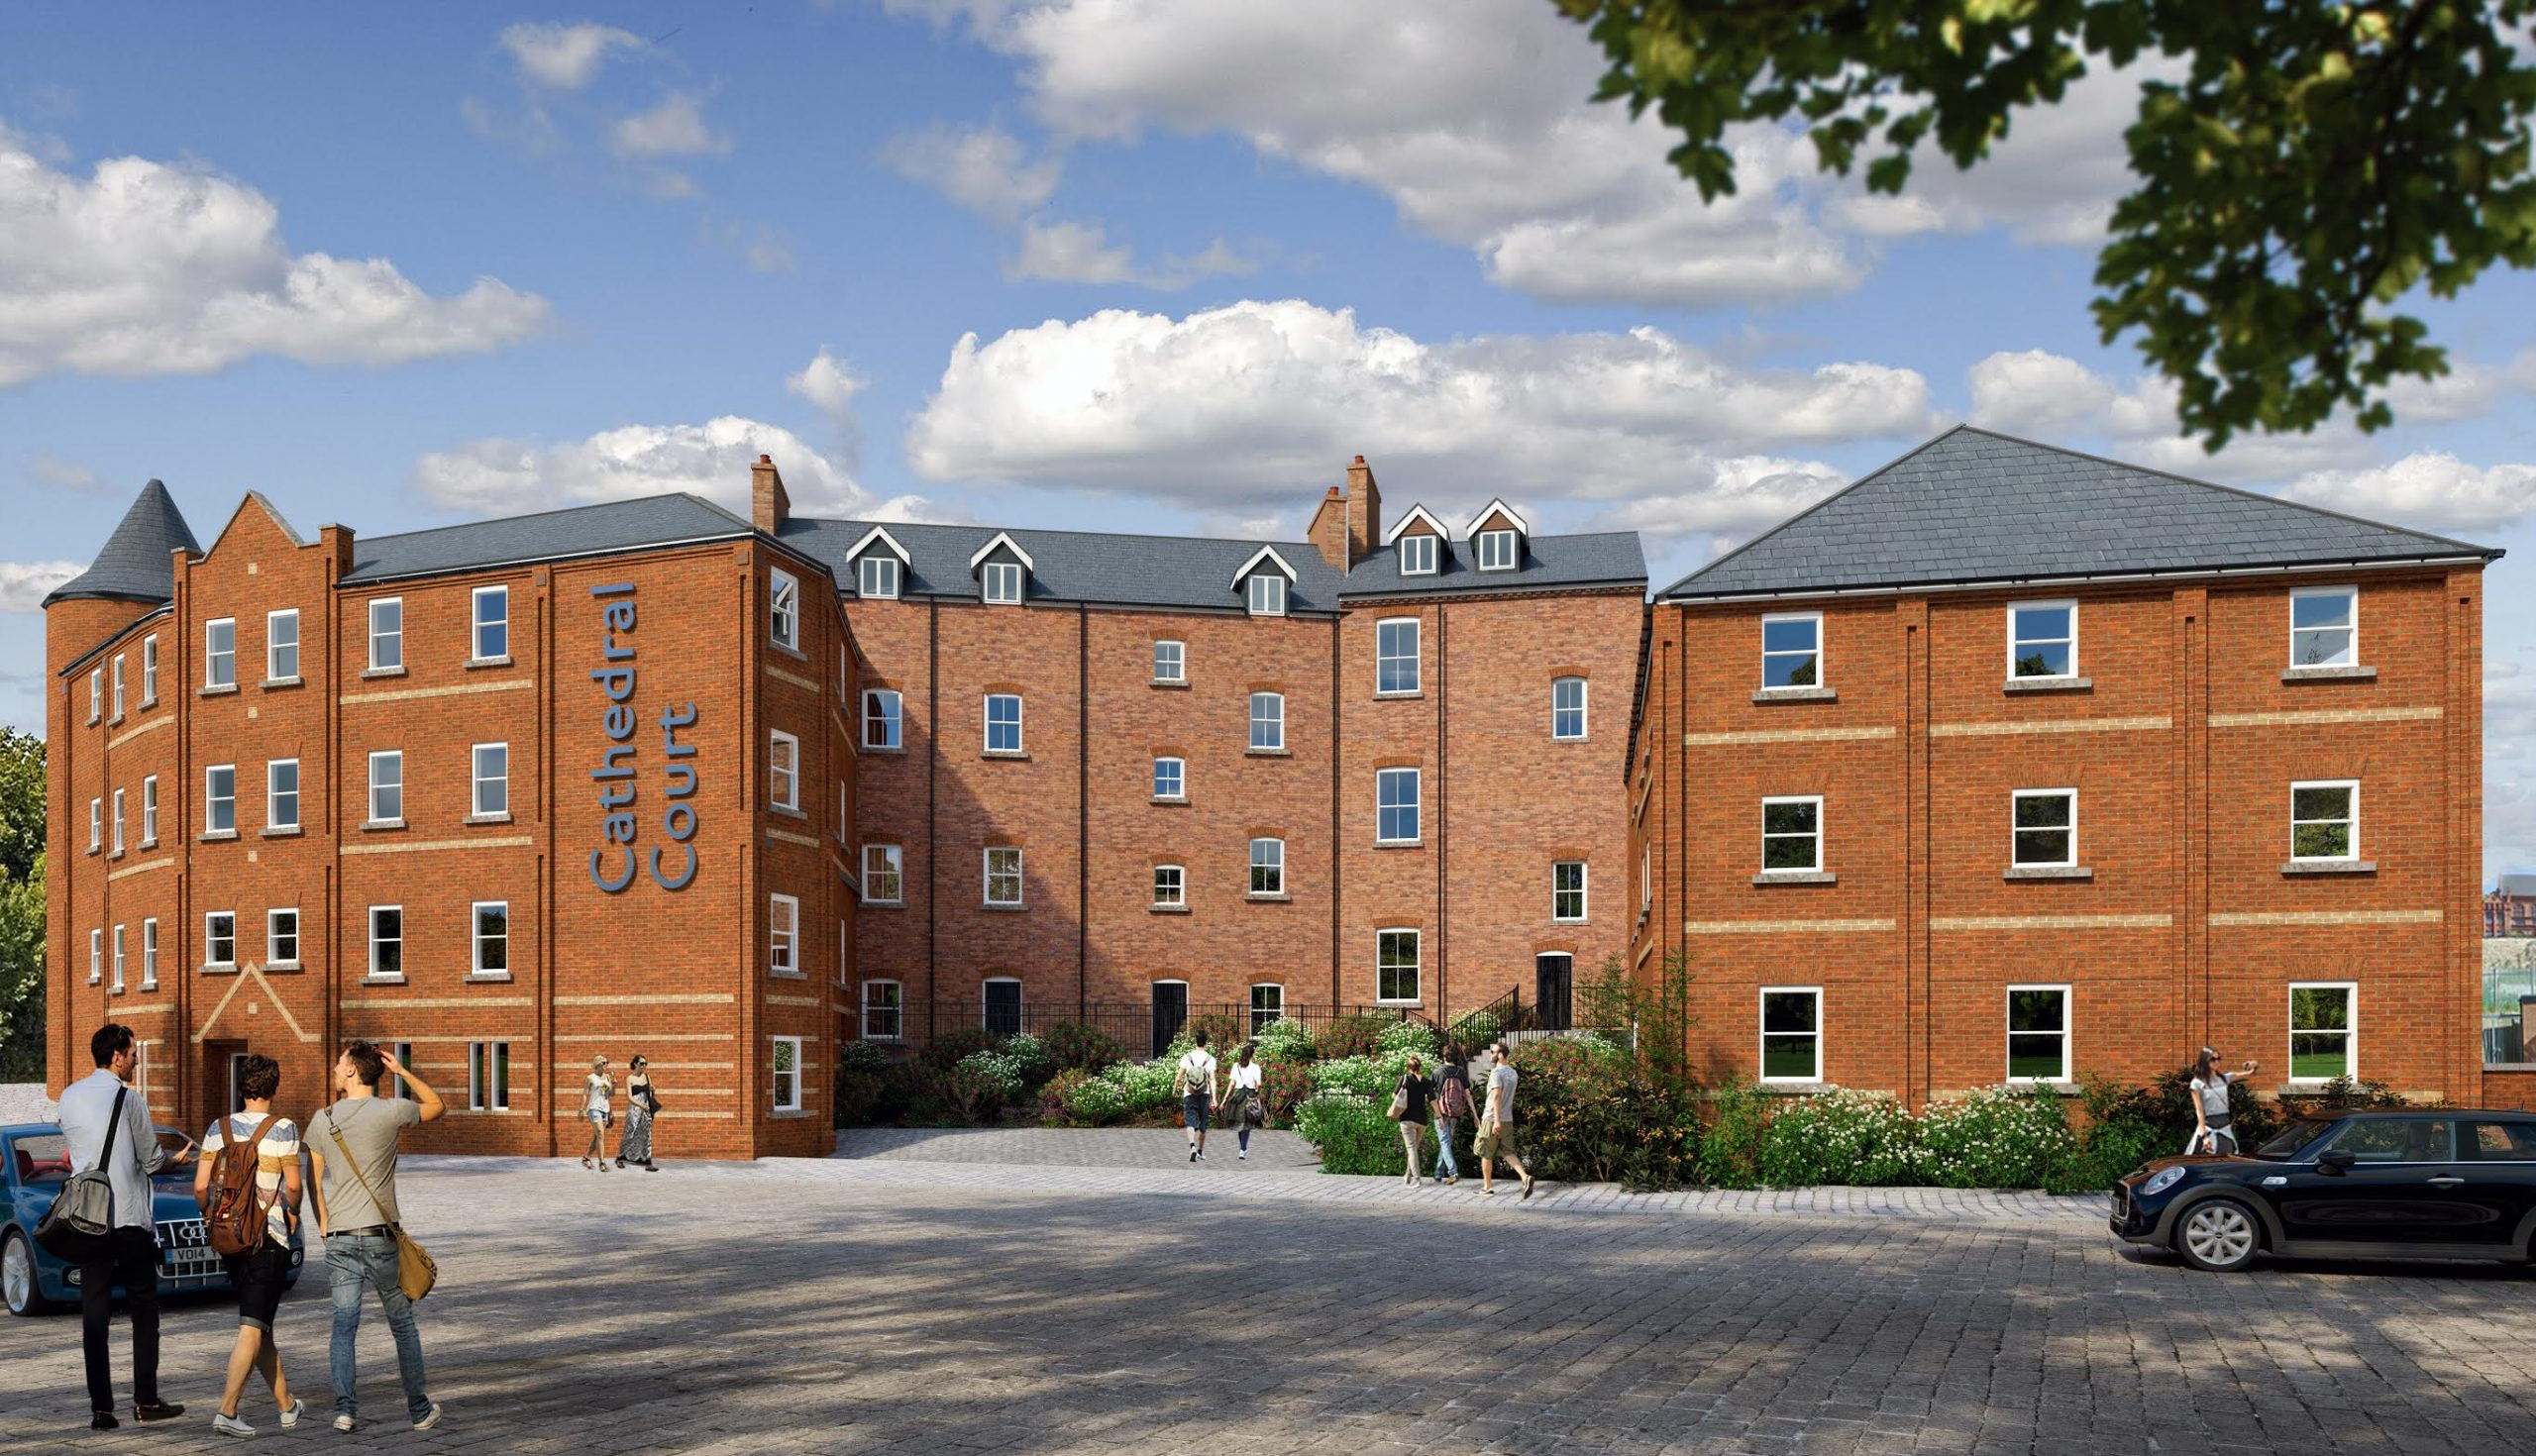 Flat 2, Cathedral Court – 4 Bed